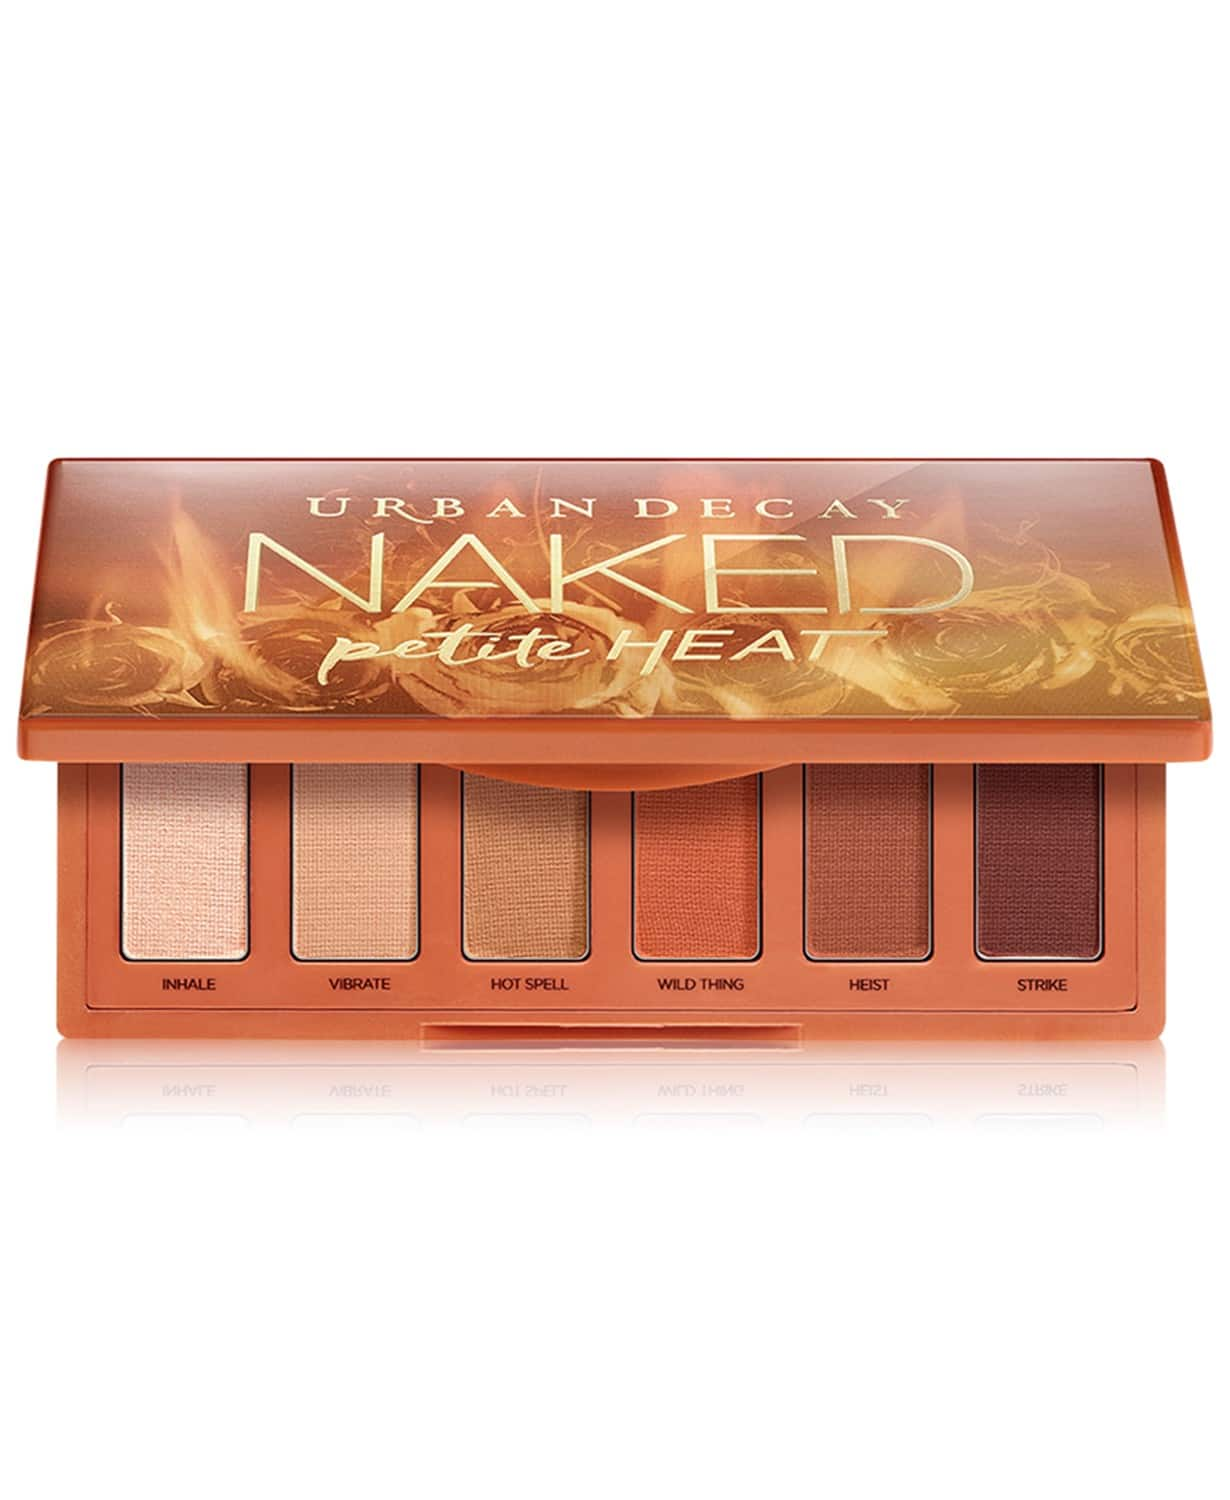 Urban Decay Beauty Sale: Naked Petite Heat Eyeshadow Palette